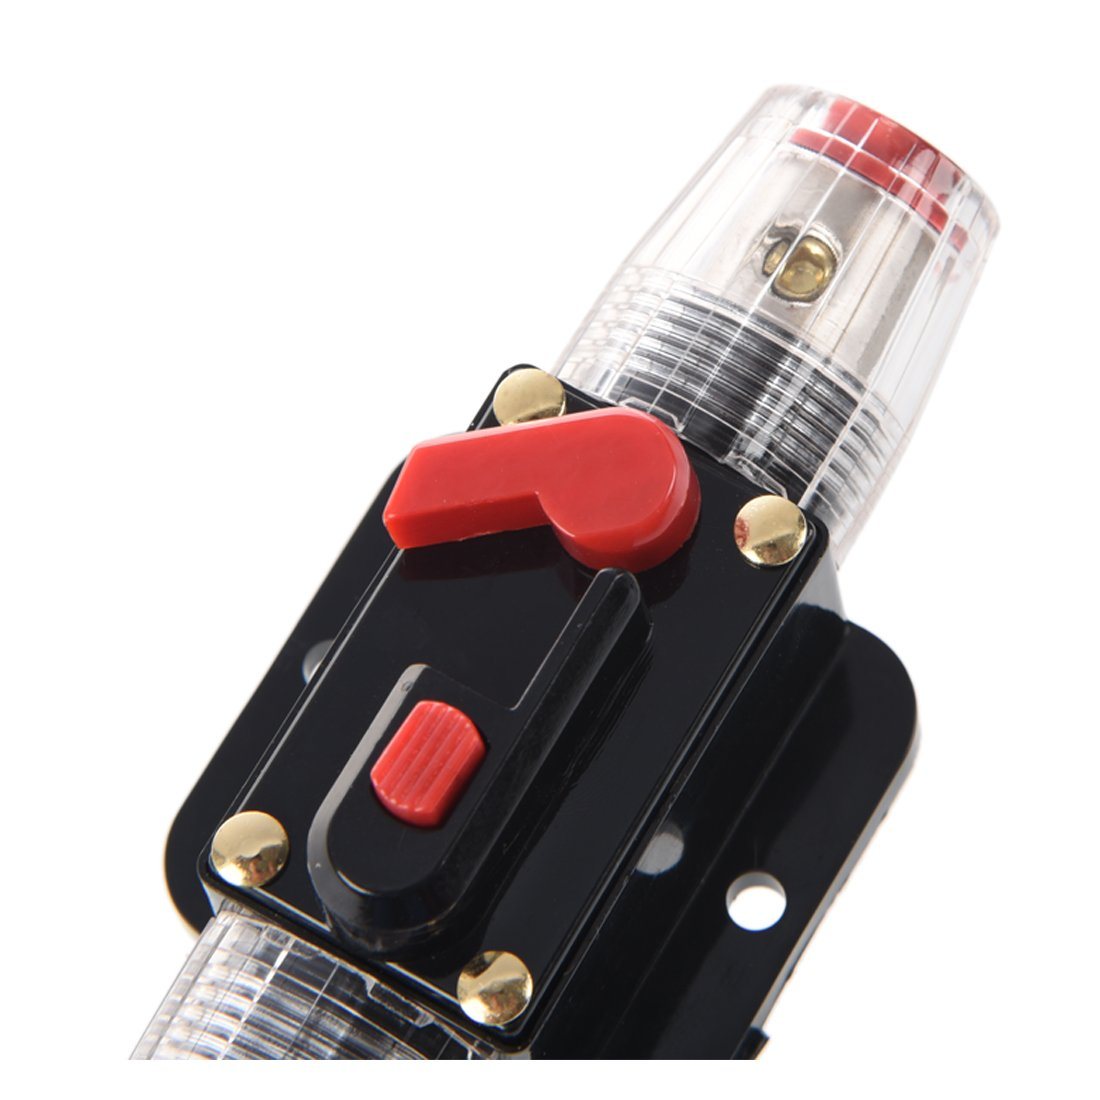 30A Car Audio Inline Circuit Breaker Fuse Holder 12v-24v System Protection Black SODIAL R